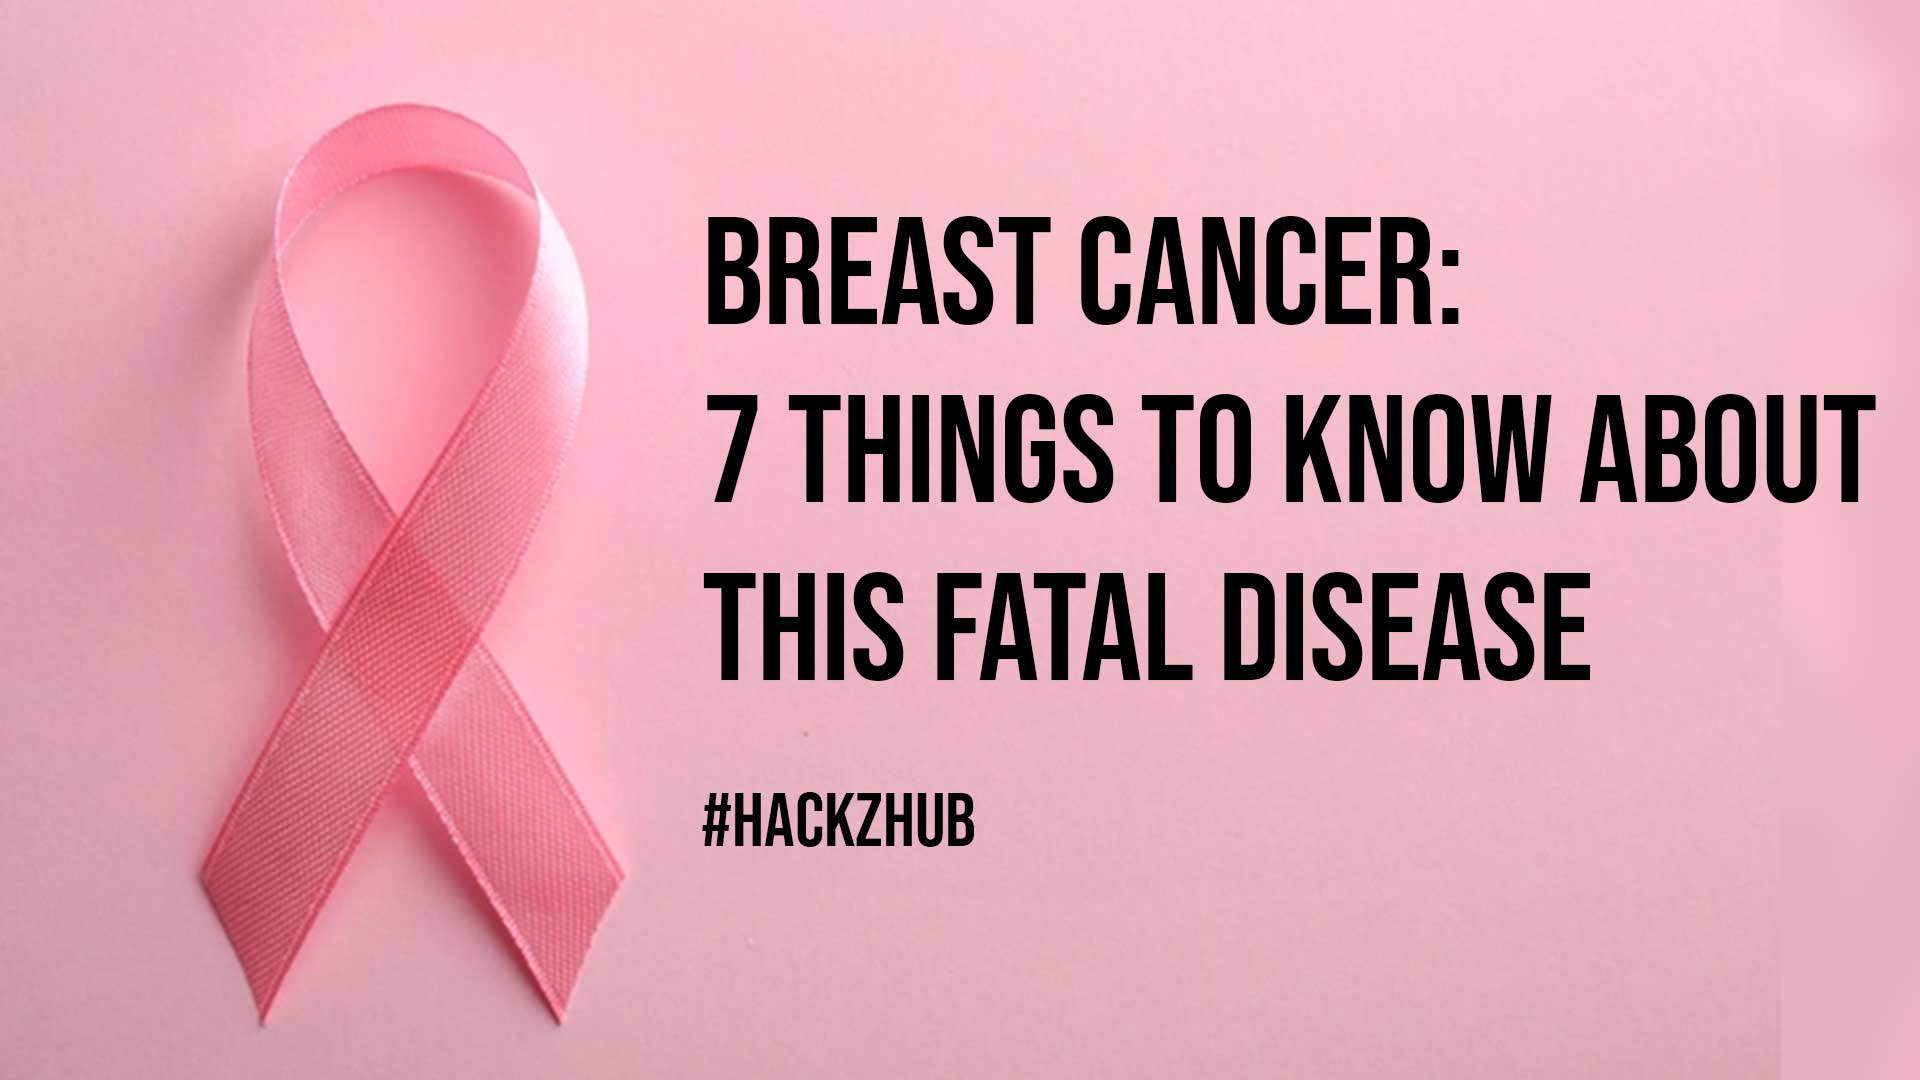 Breast Cancer 7 Things to Know About This Fatal Disease